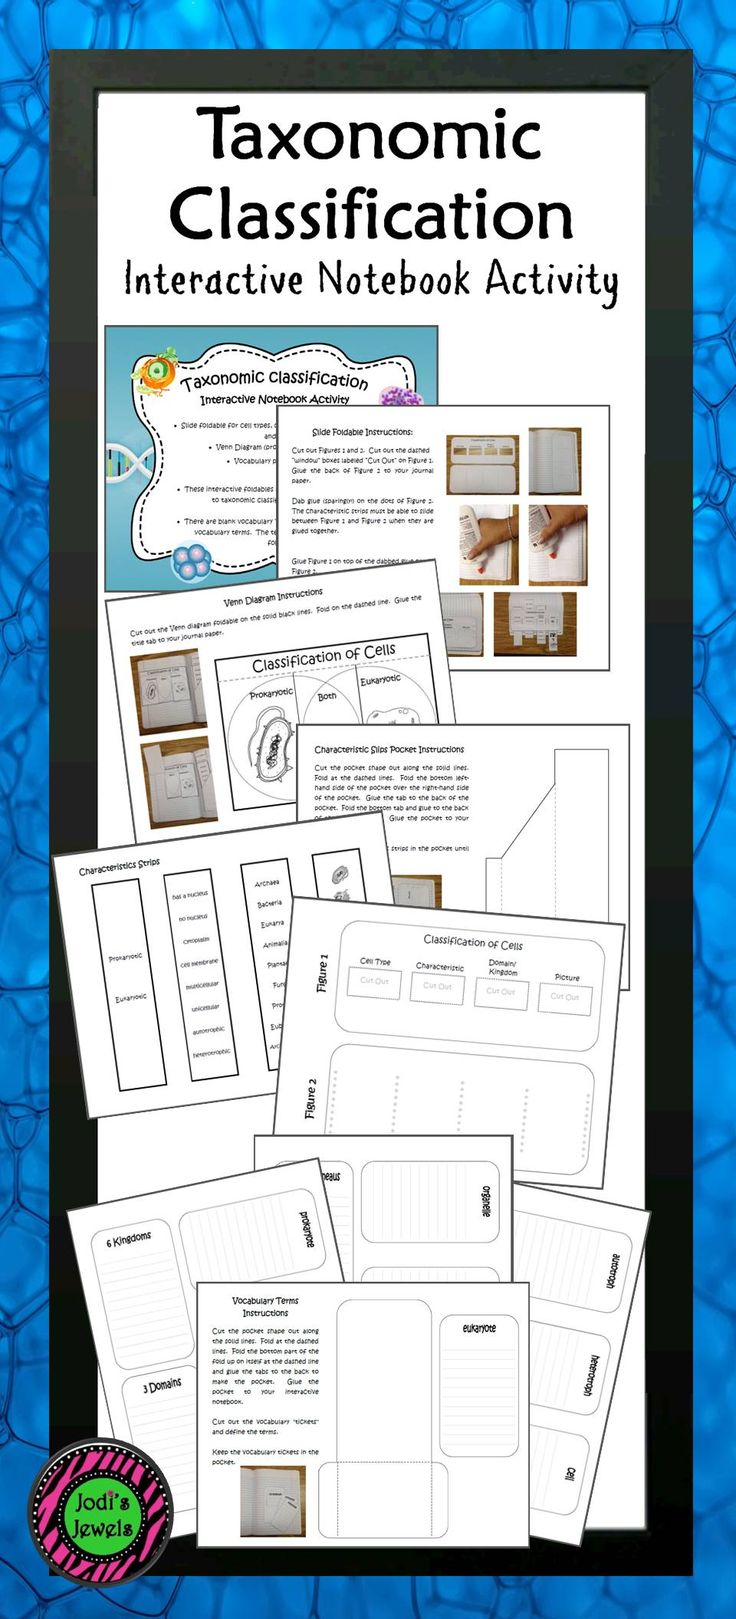 Created for an introduction to taxonomic classification of living things, students will create a slide foldable for cell types, characteristics, domain/kingdom, and images; an interactive Venn for prokaryotic and eukaryotic; and a vocabulary pocket with terms.